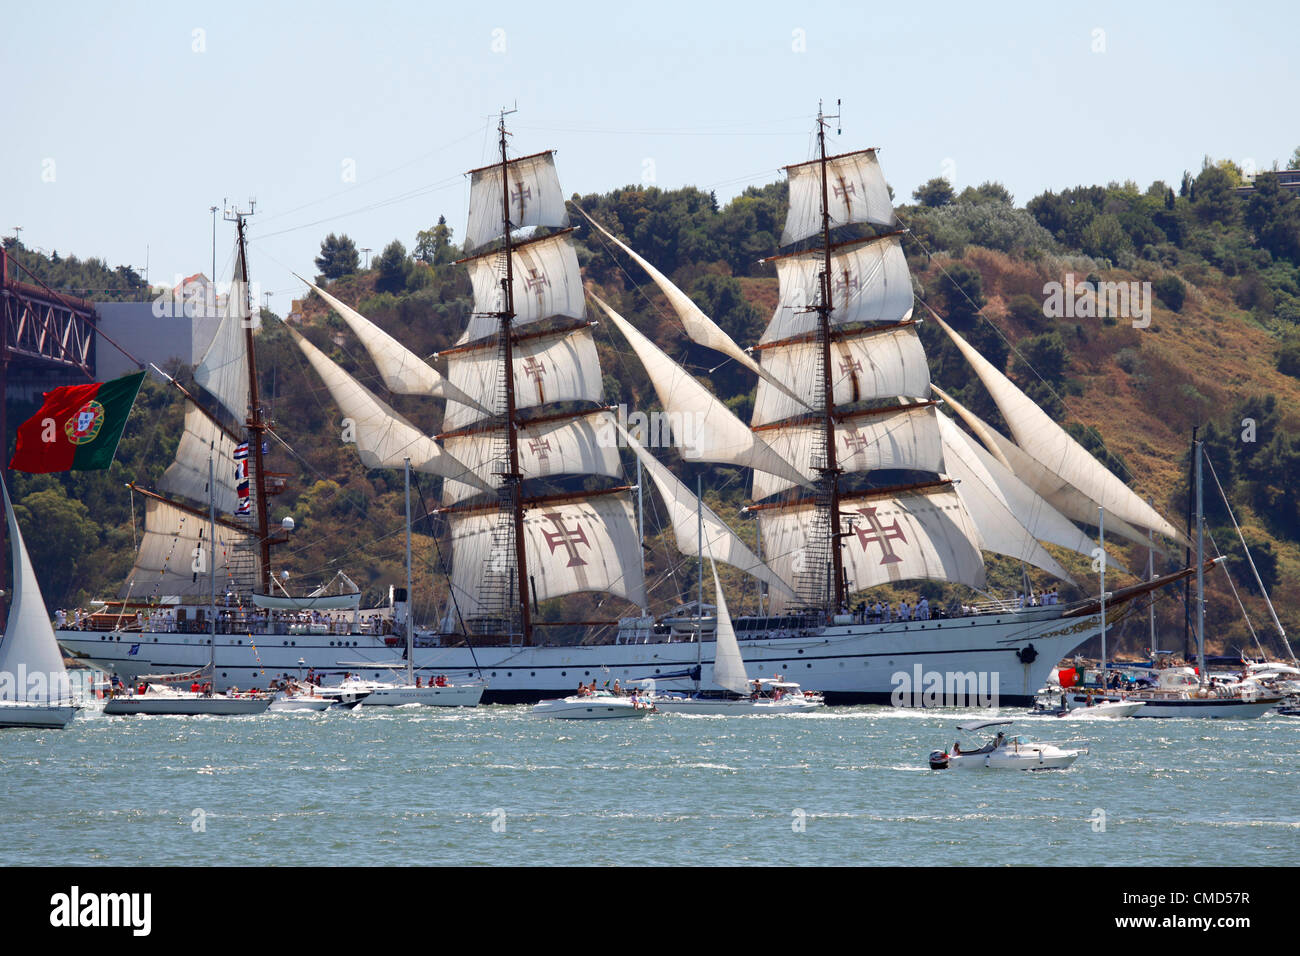 The Sagres tall ship sails on the River Tagus as it departs Lisbon, Portugal. It is one of the vessels taking part - Stock Image